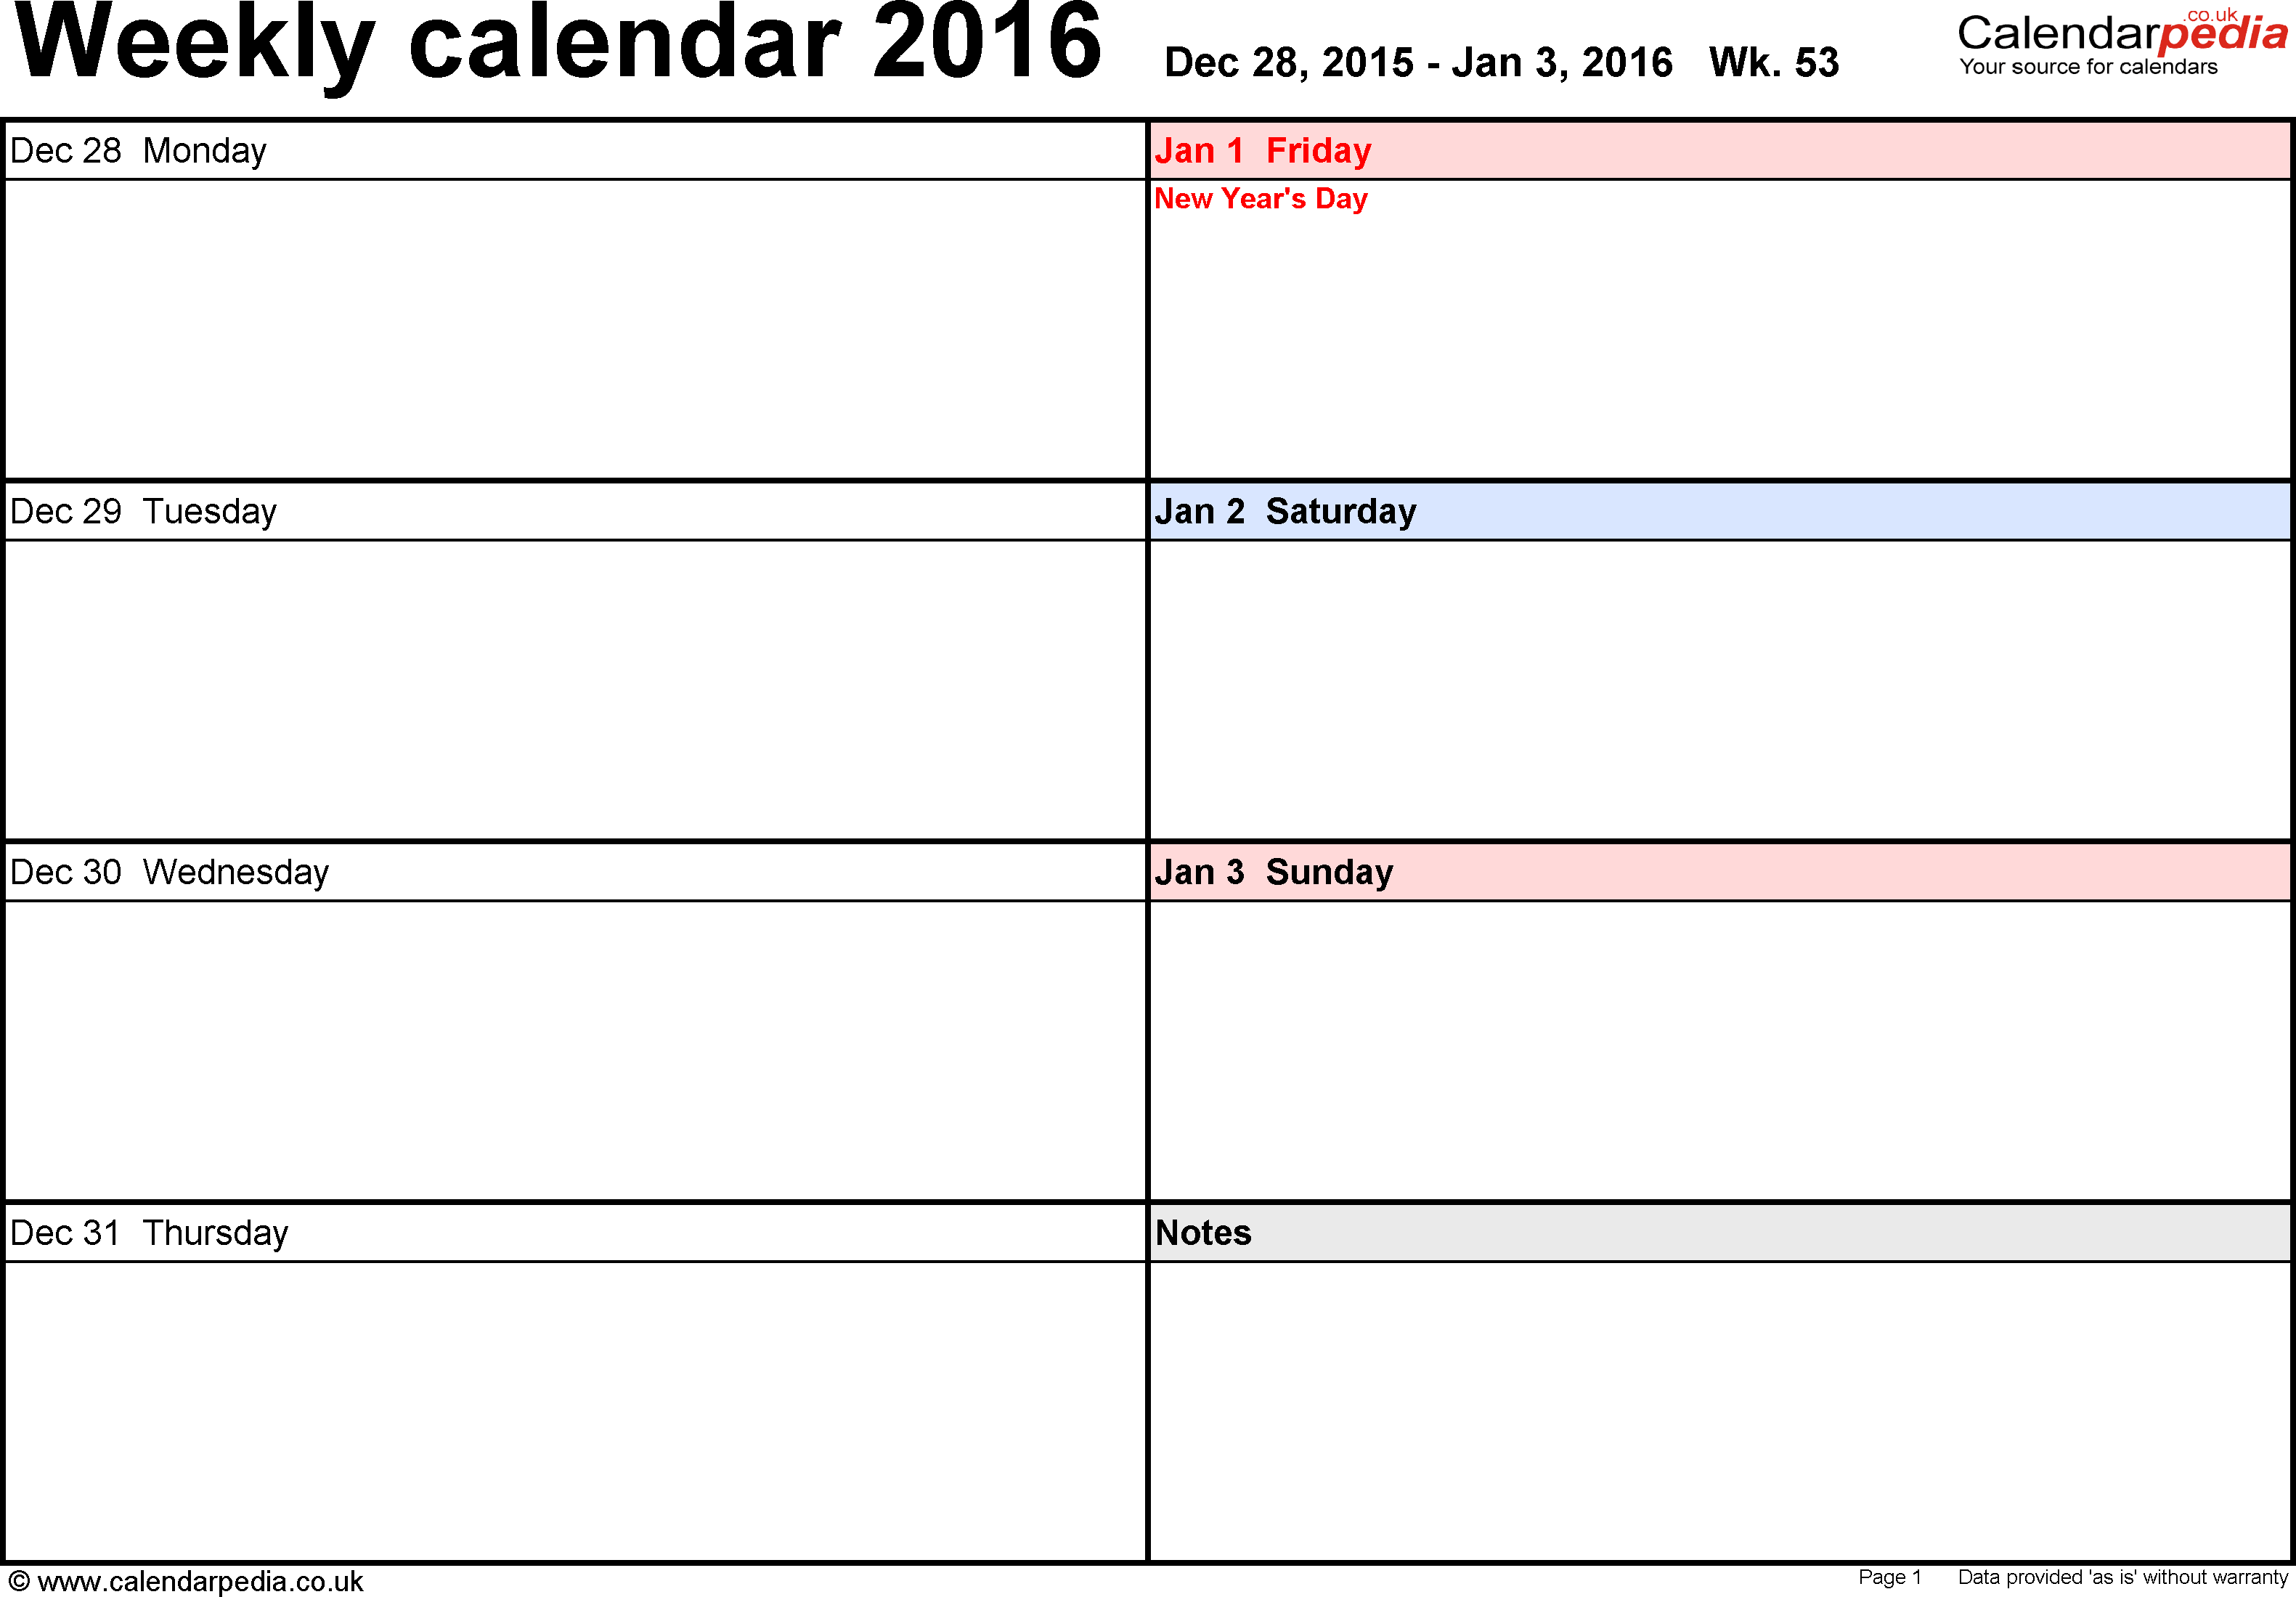 Word Template 6: Weekly Calendar 2016, Landscape Orientation, Days  Horizontally, 53 Pages  Monthly Calendar Word Template